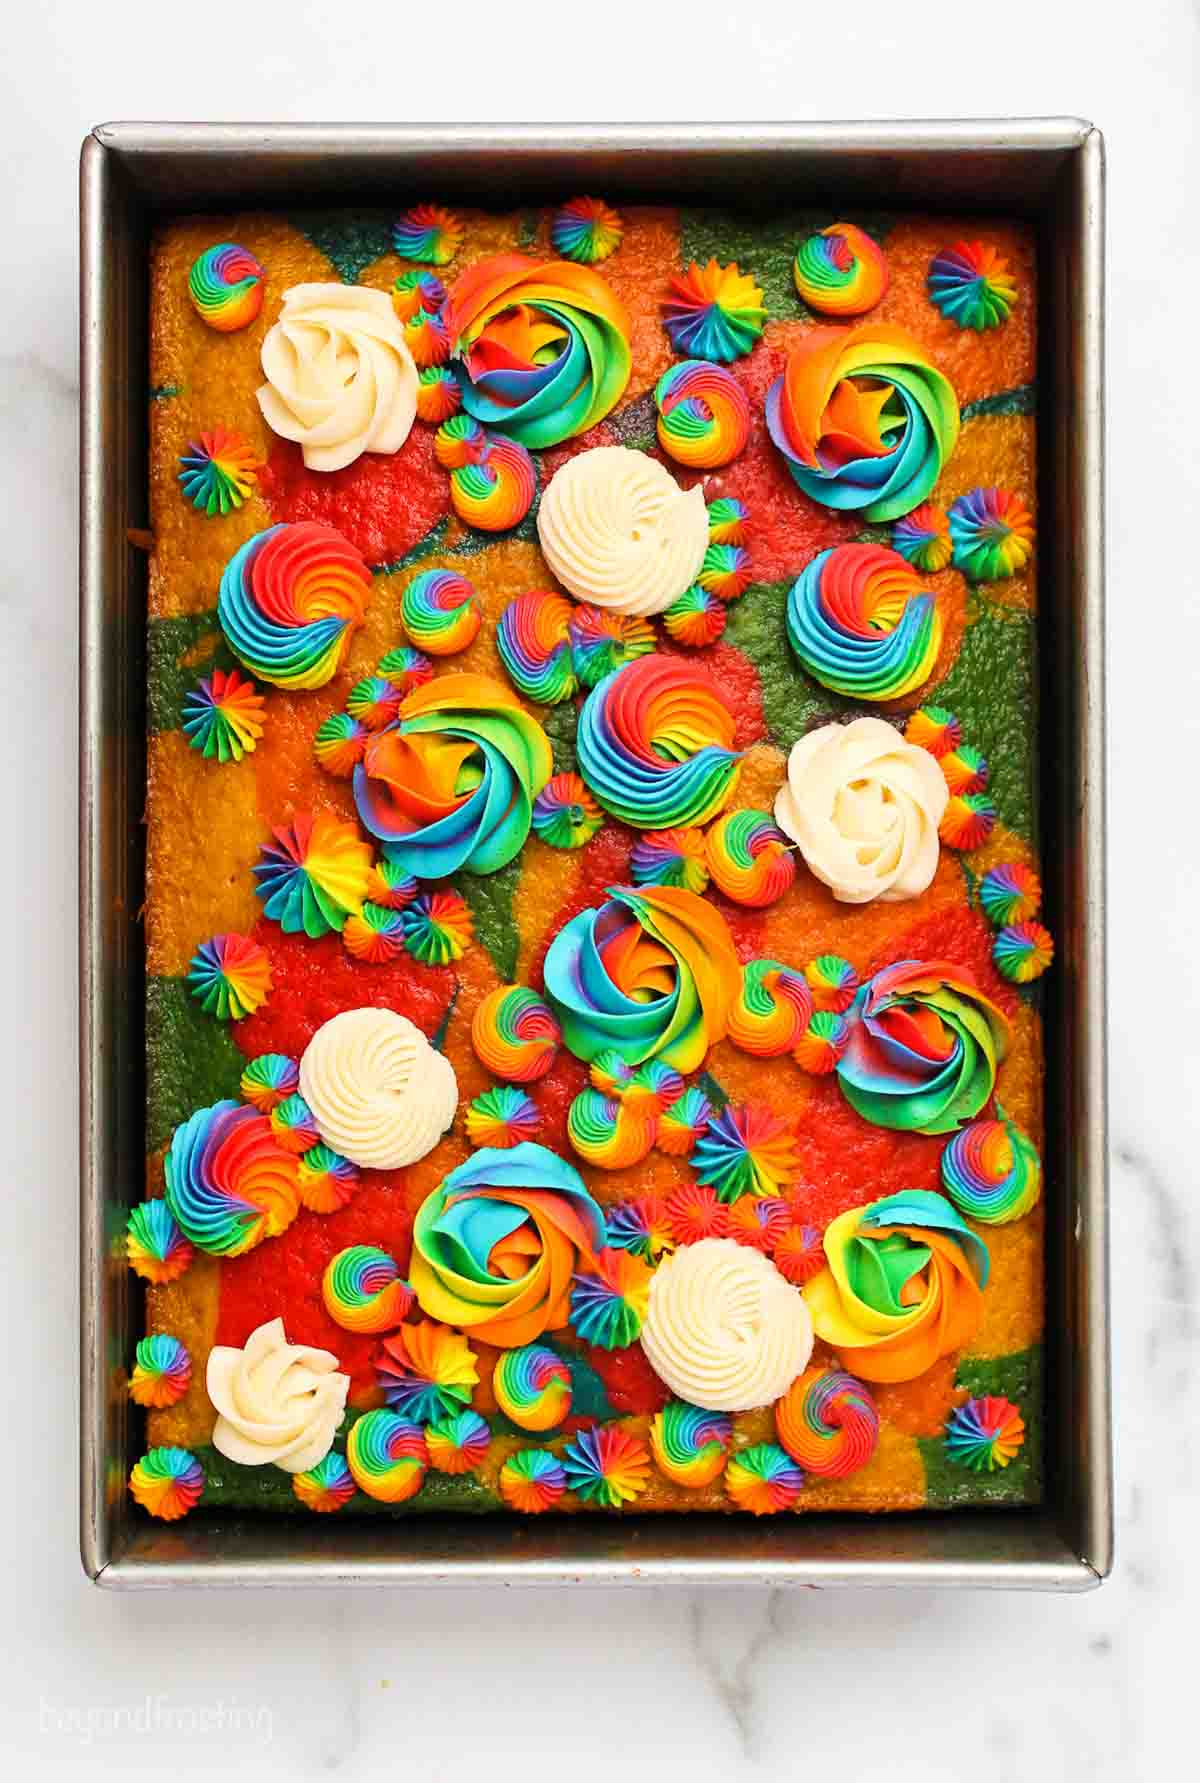 Rainbow cake topped with rainbow and white frosting rosettes